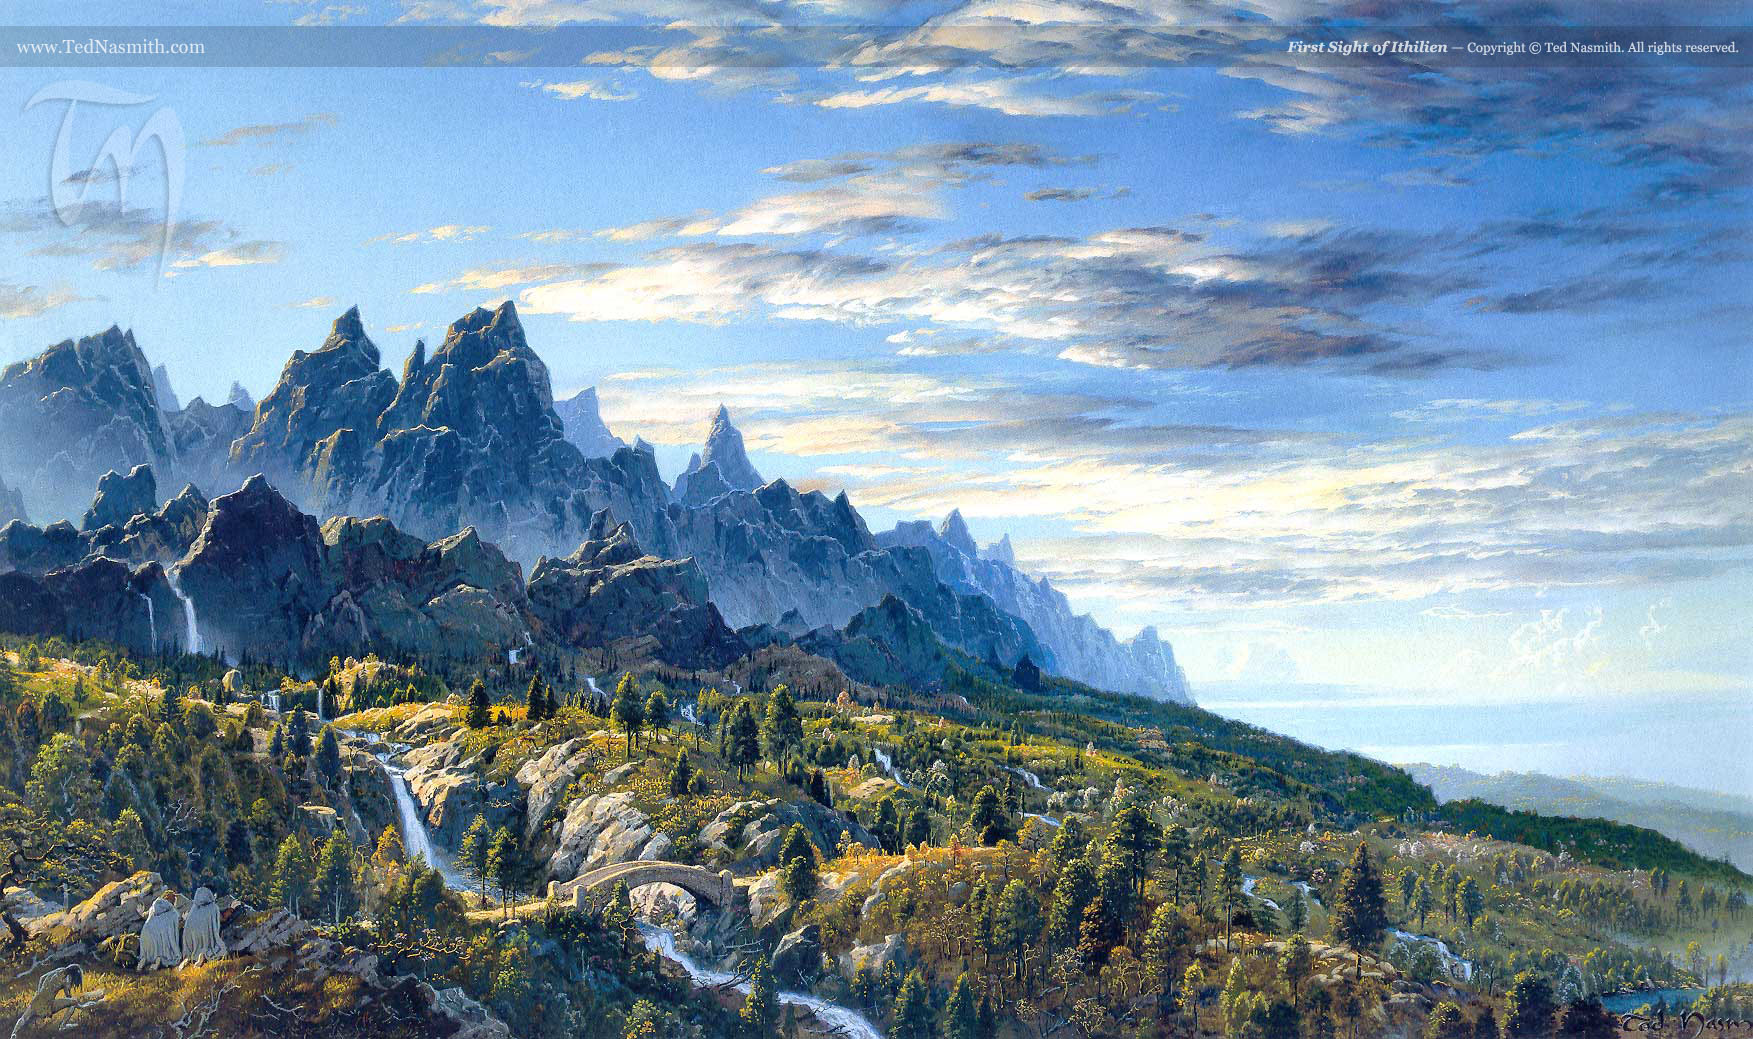 Ithilien TN-First_Sight_of_Ithilien